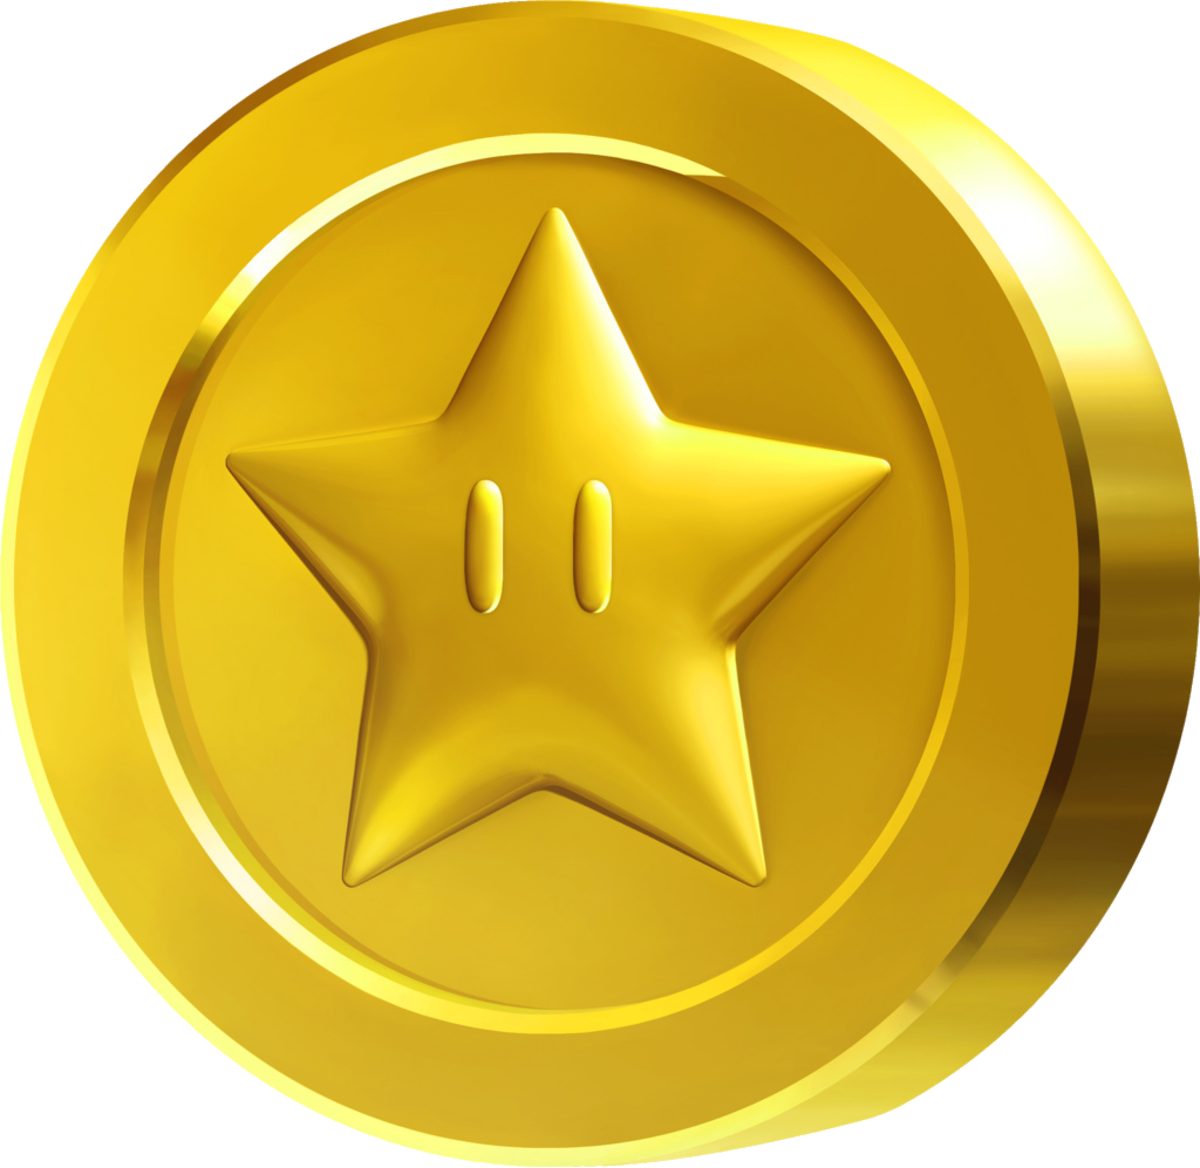 How to find Star Coins in New Super Mario Bros. U